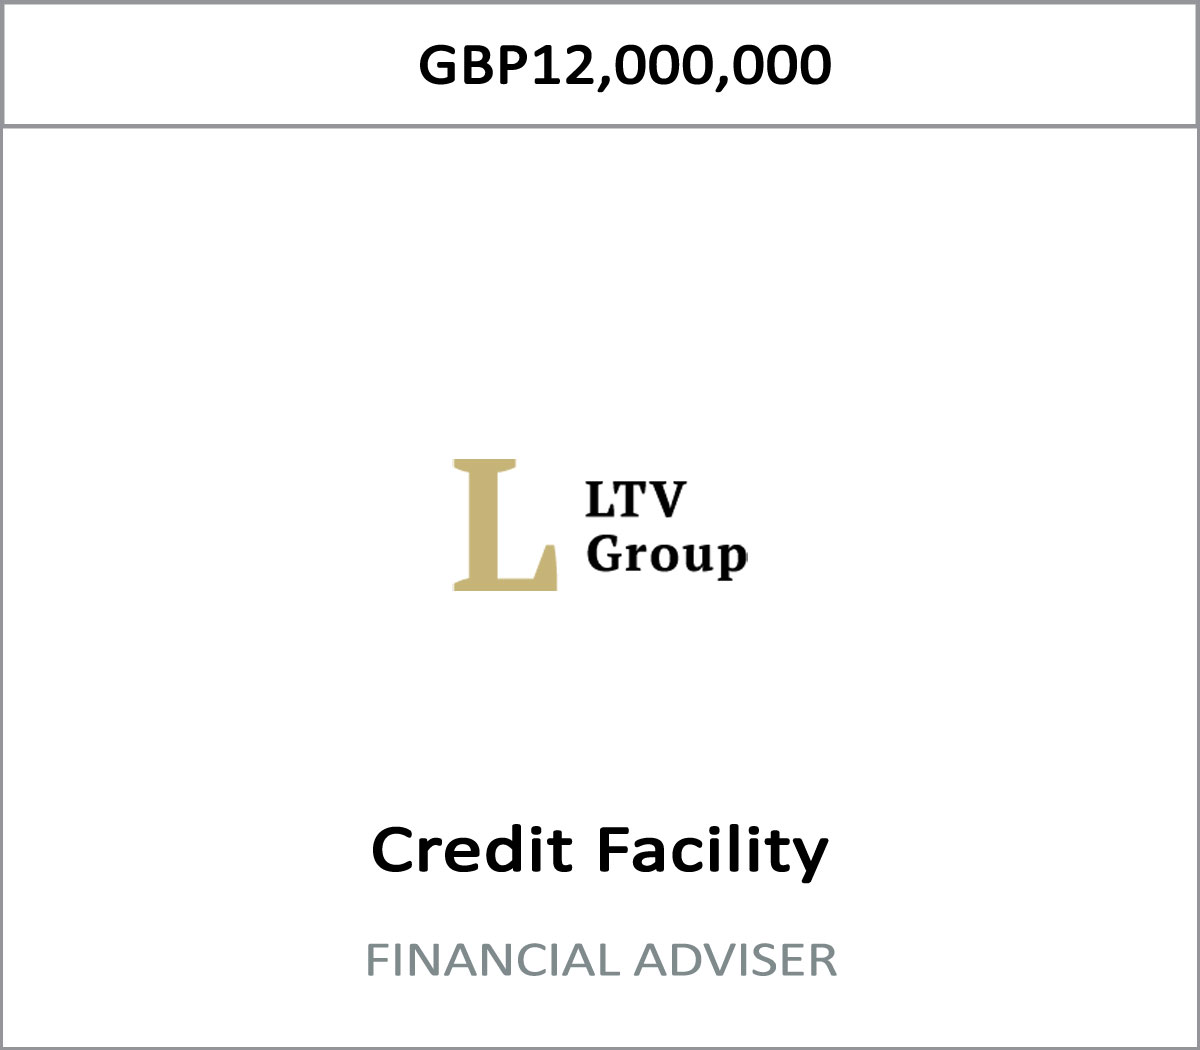 LTV Group Ltd